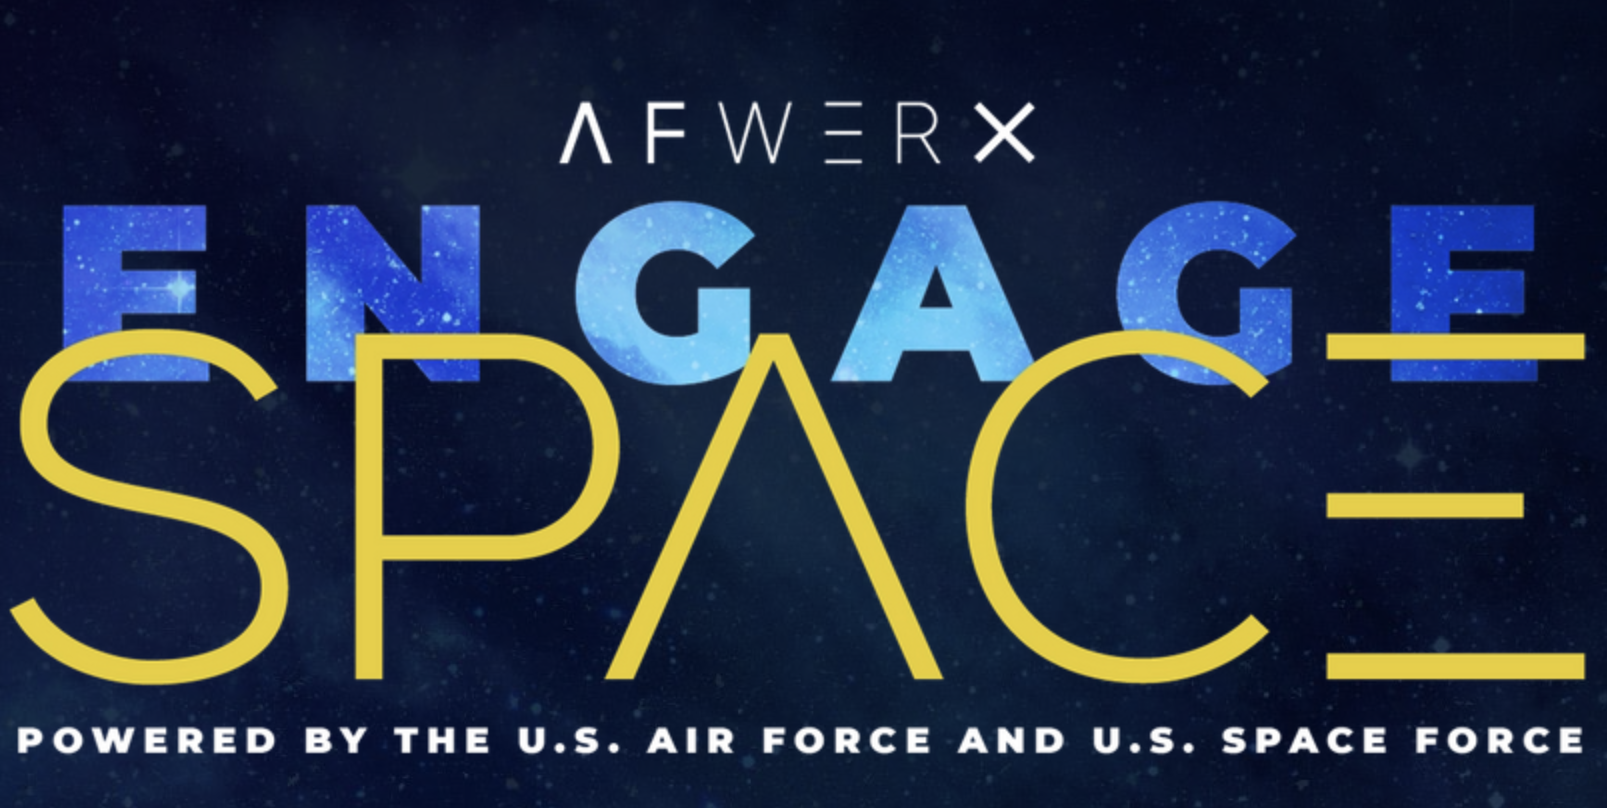 AFWERX Announces USNC-Tech Selected to Exhibit at EngageSpace